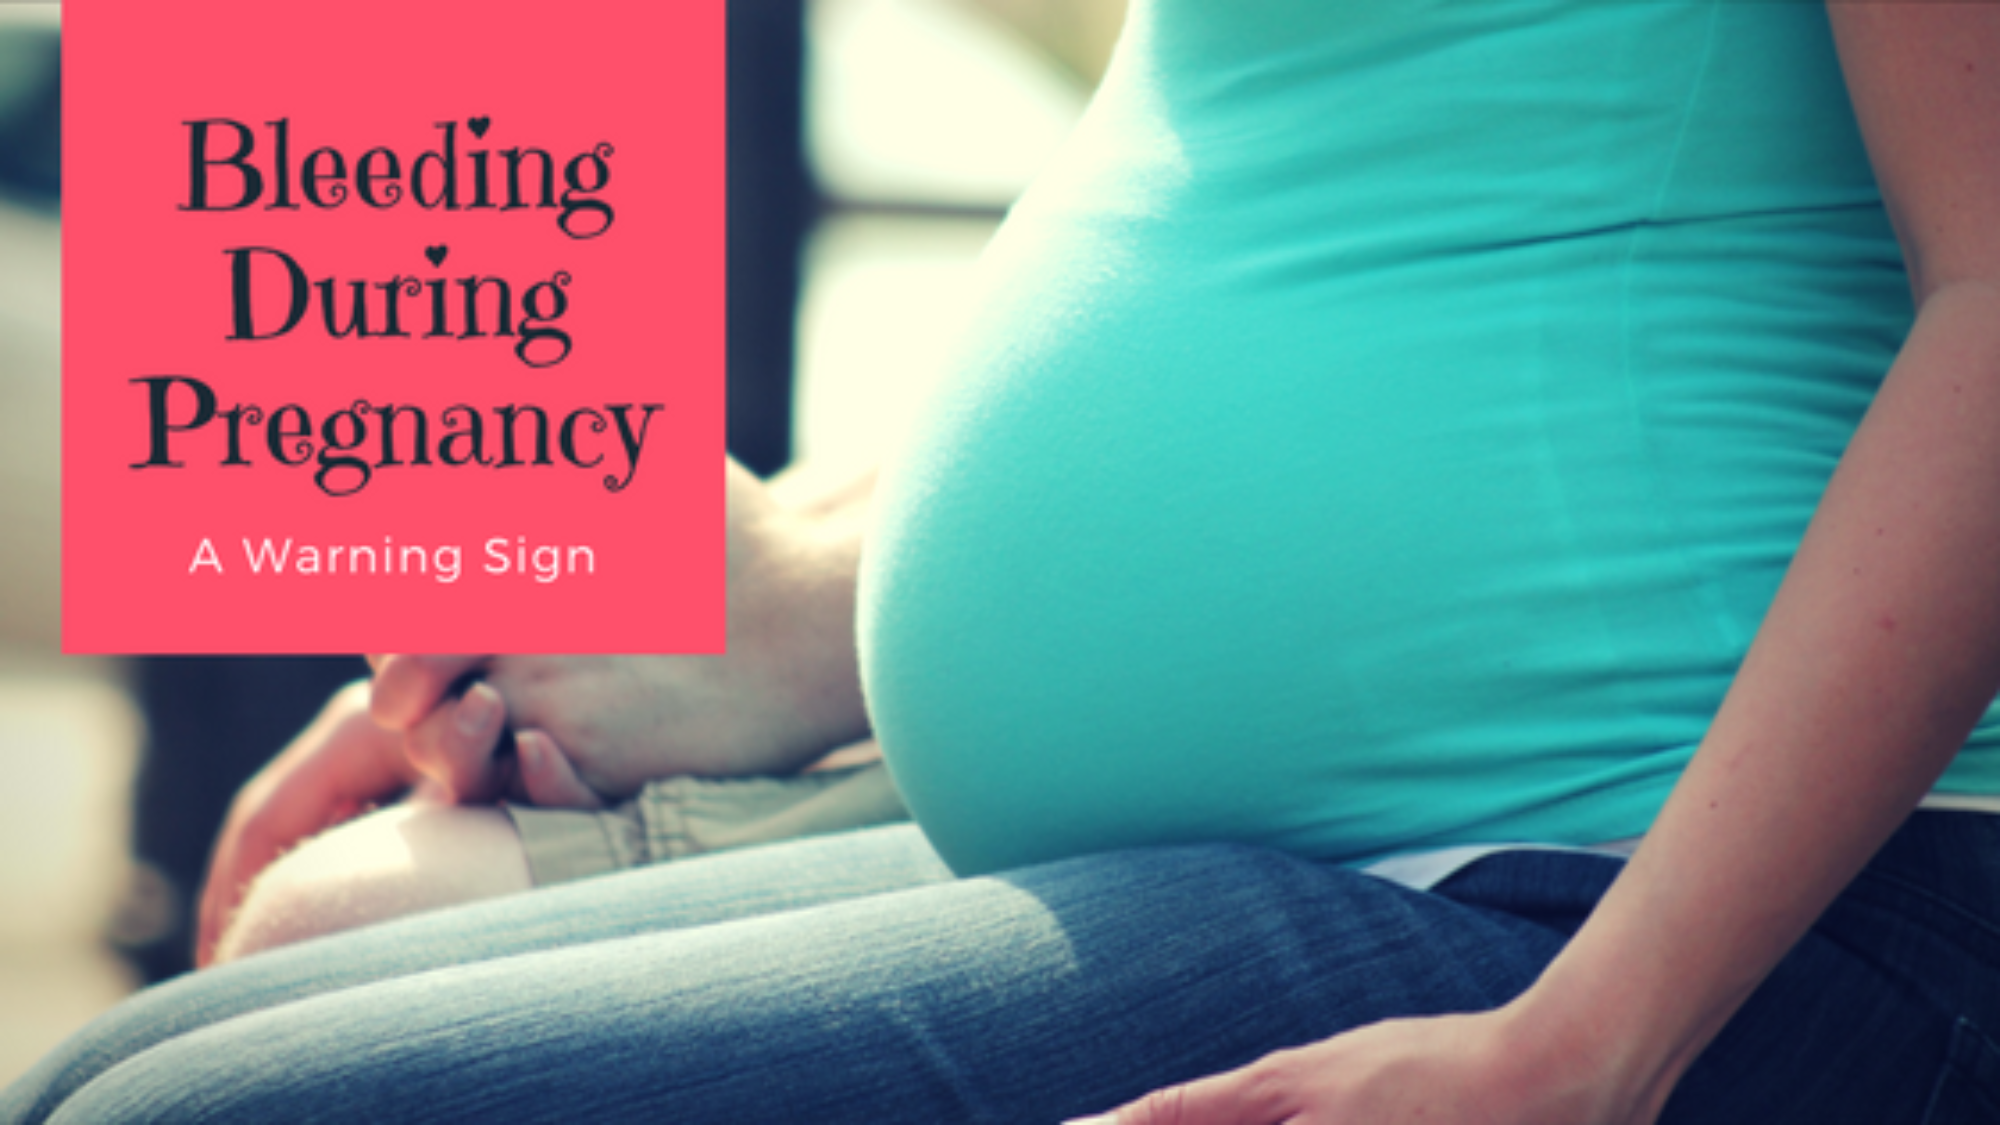 Bleeding-During-Pregnancy-a-warning-sign